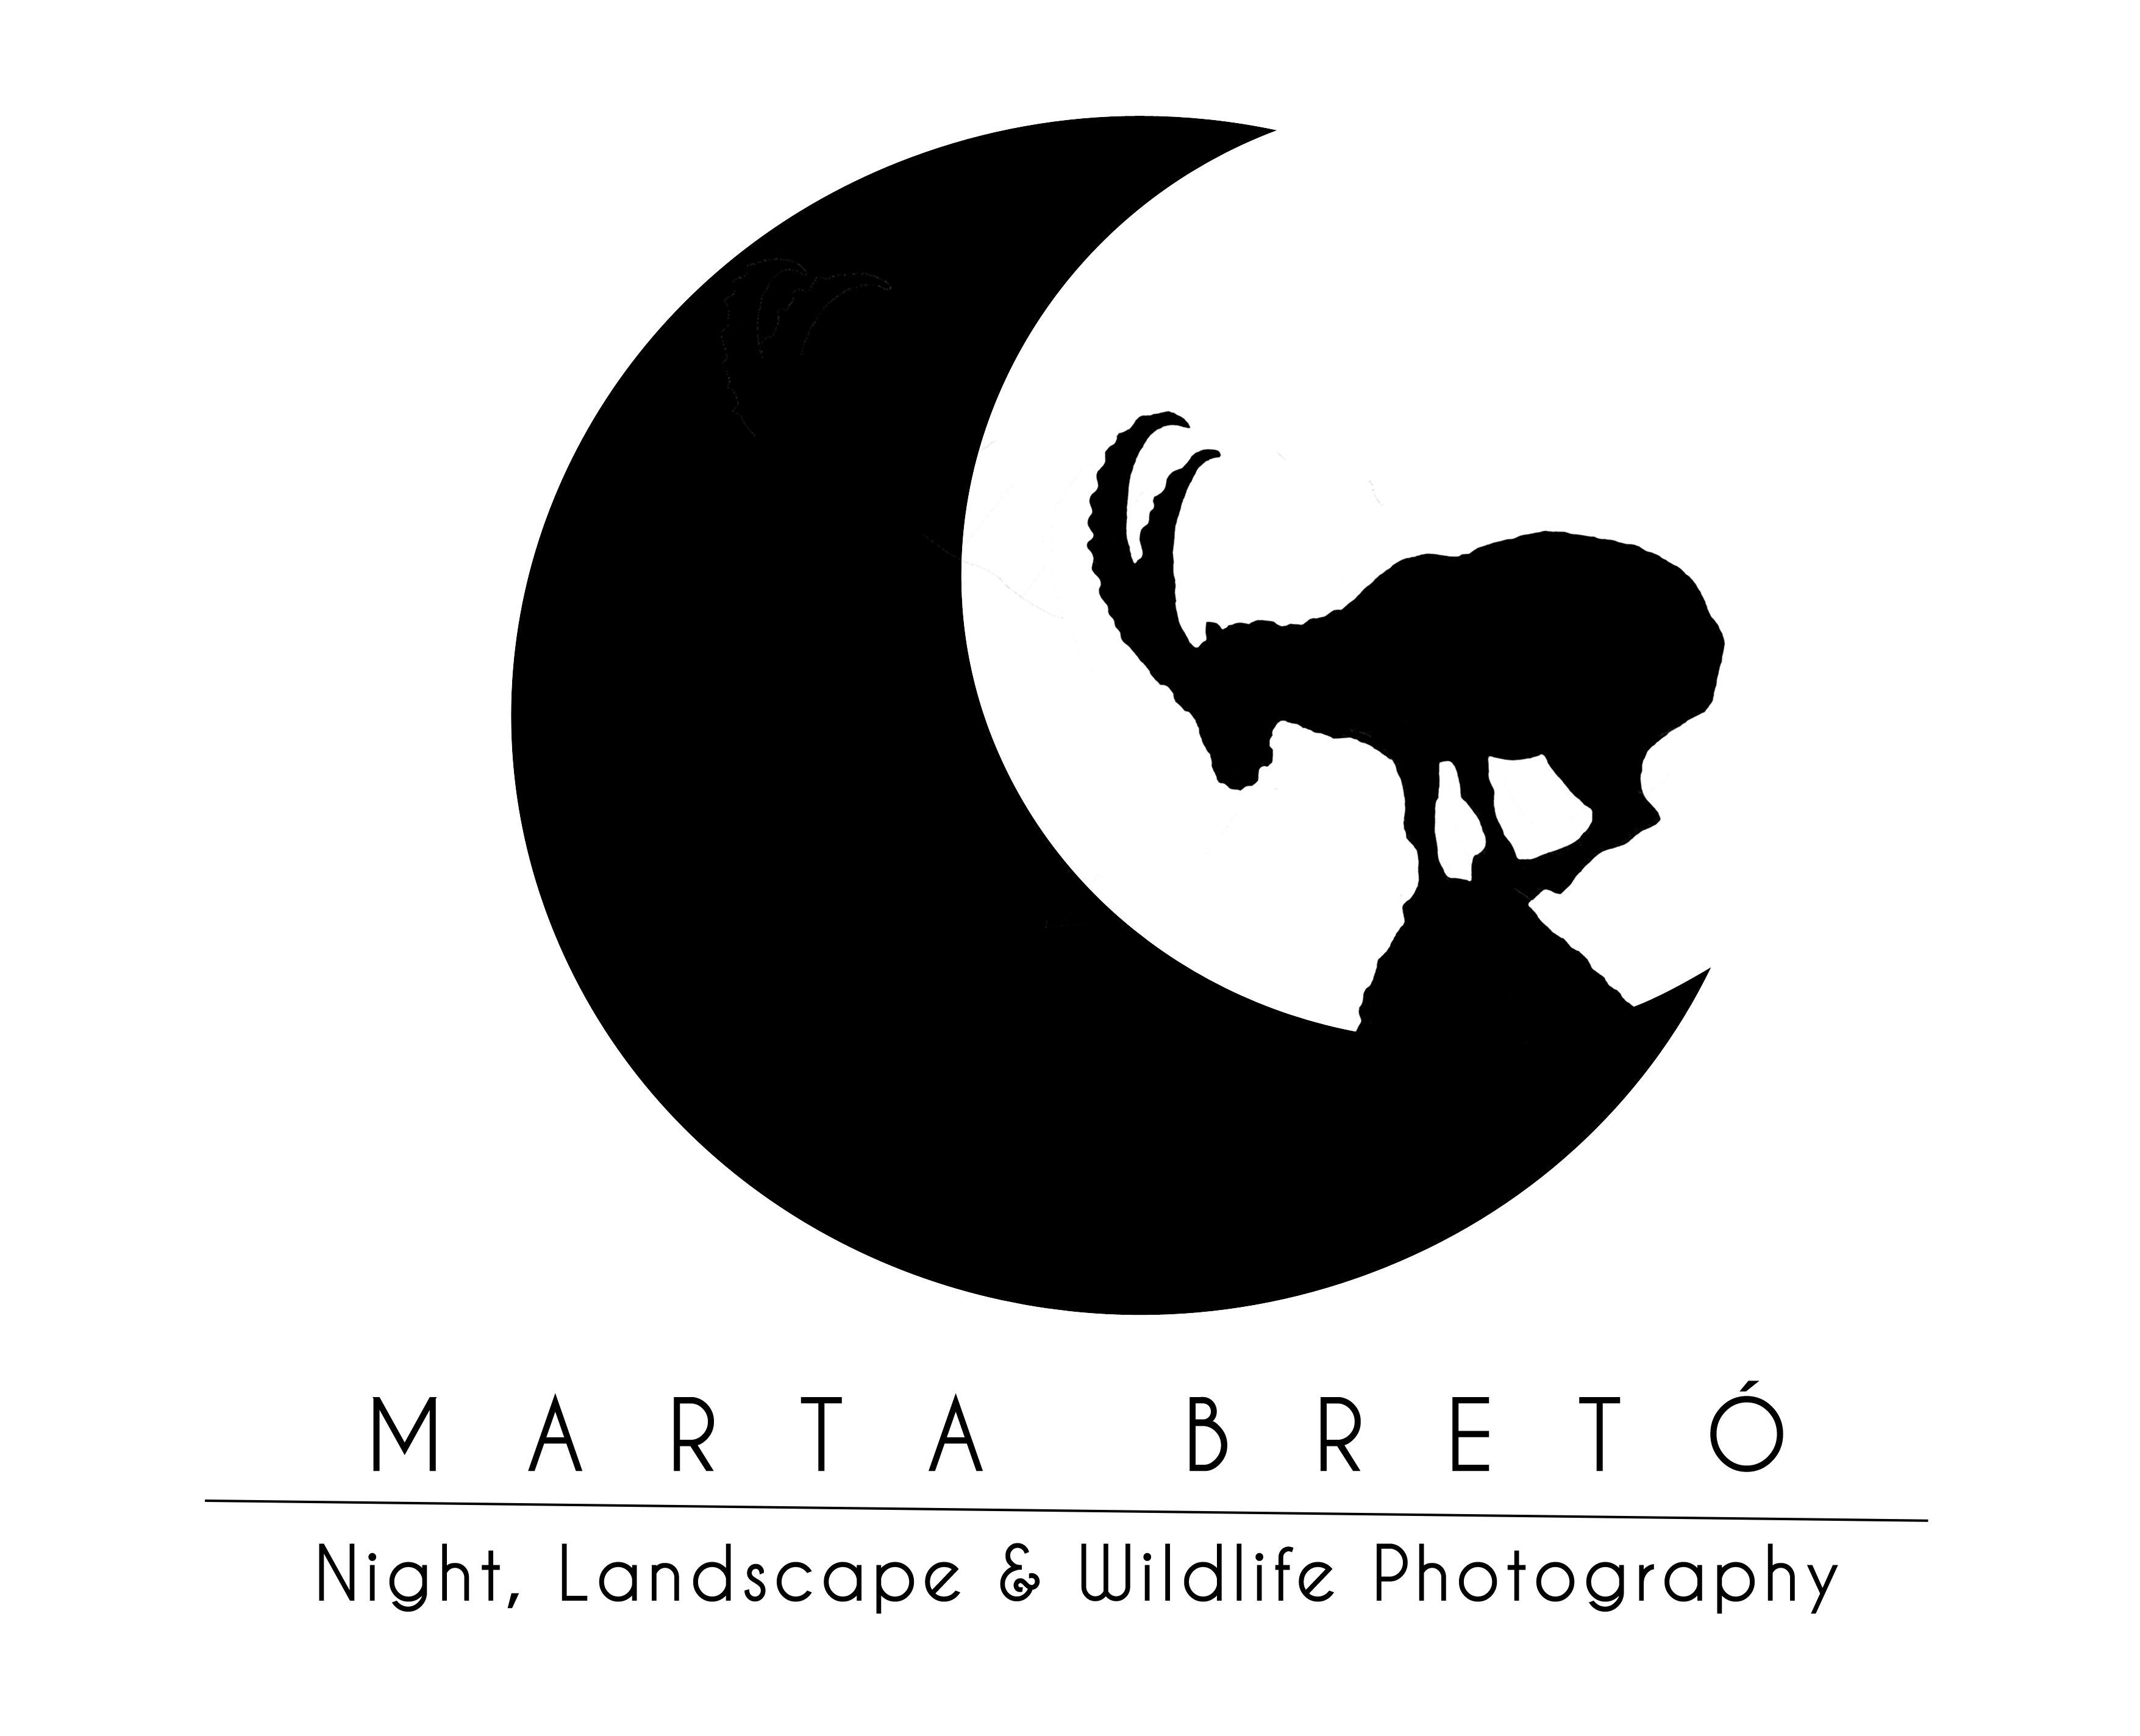 Marta Bretó - Night, Landscape & Wildlife Photography